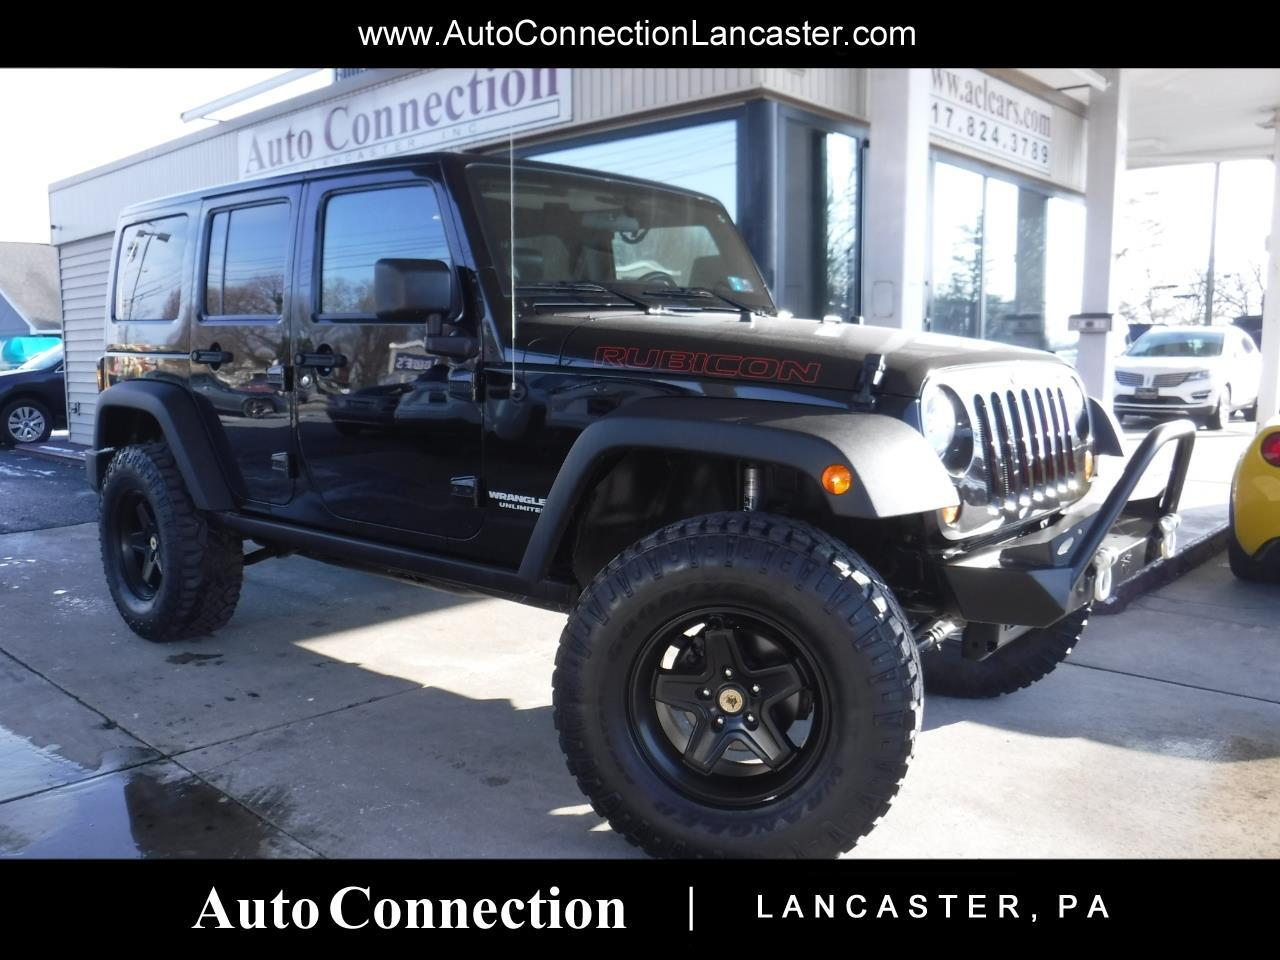 2012 Jeep Wrangler Unlimited 4WD 4dr Rubicon LIFTED